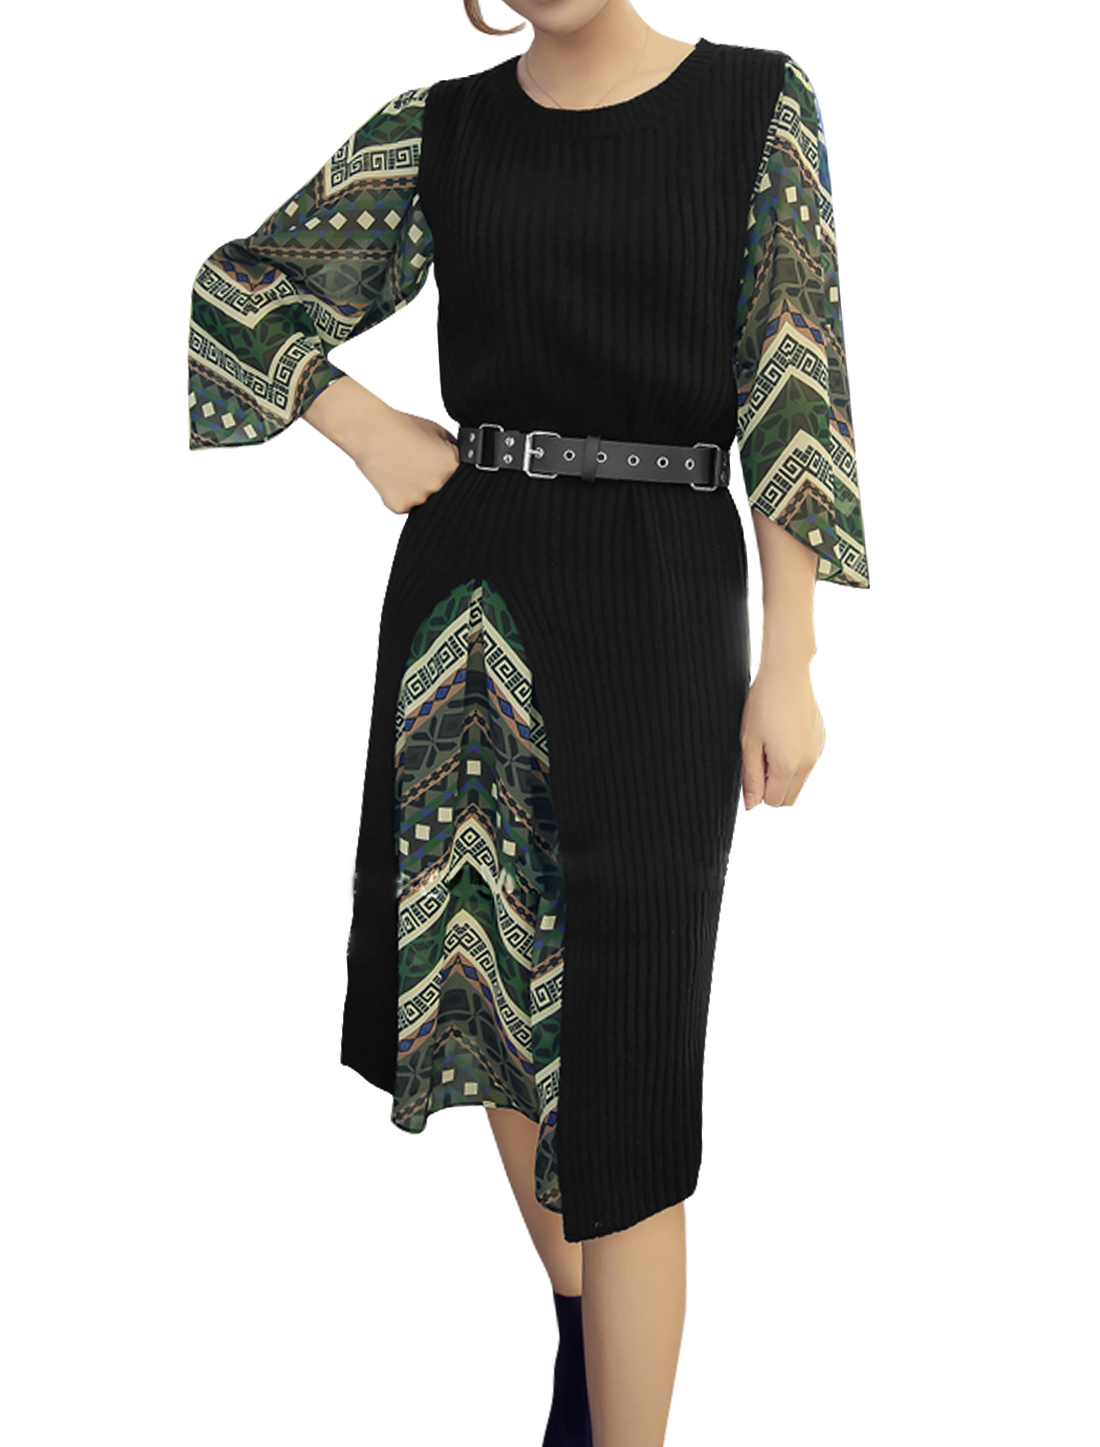 Women Split Front Knit Shirt w Geometric Prints Dress Sets Black Multicolor XS